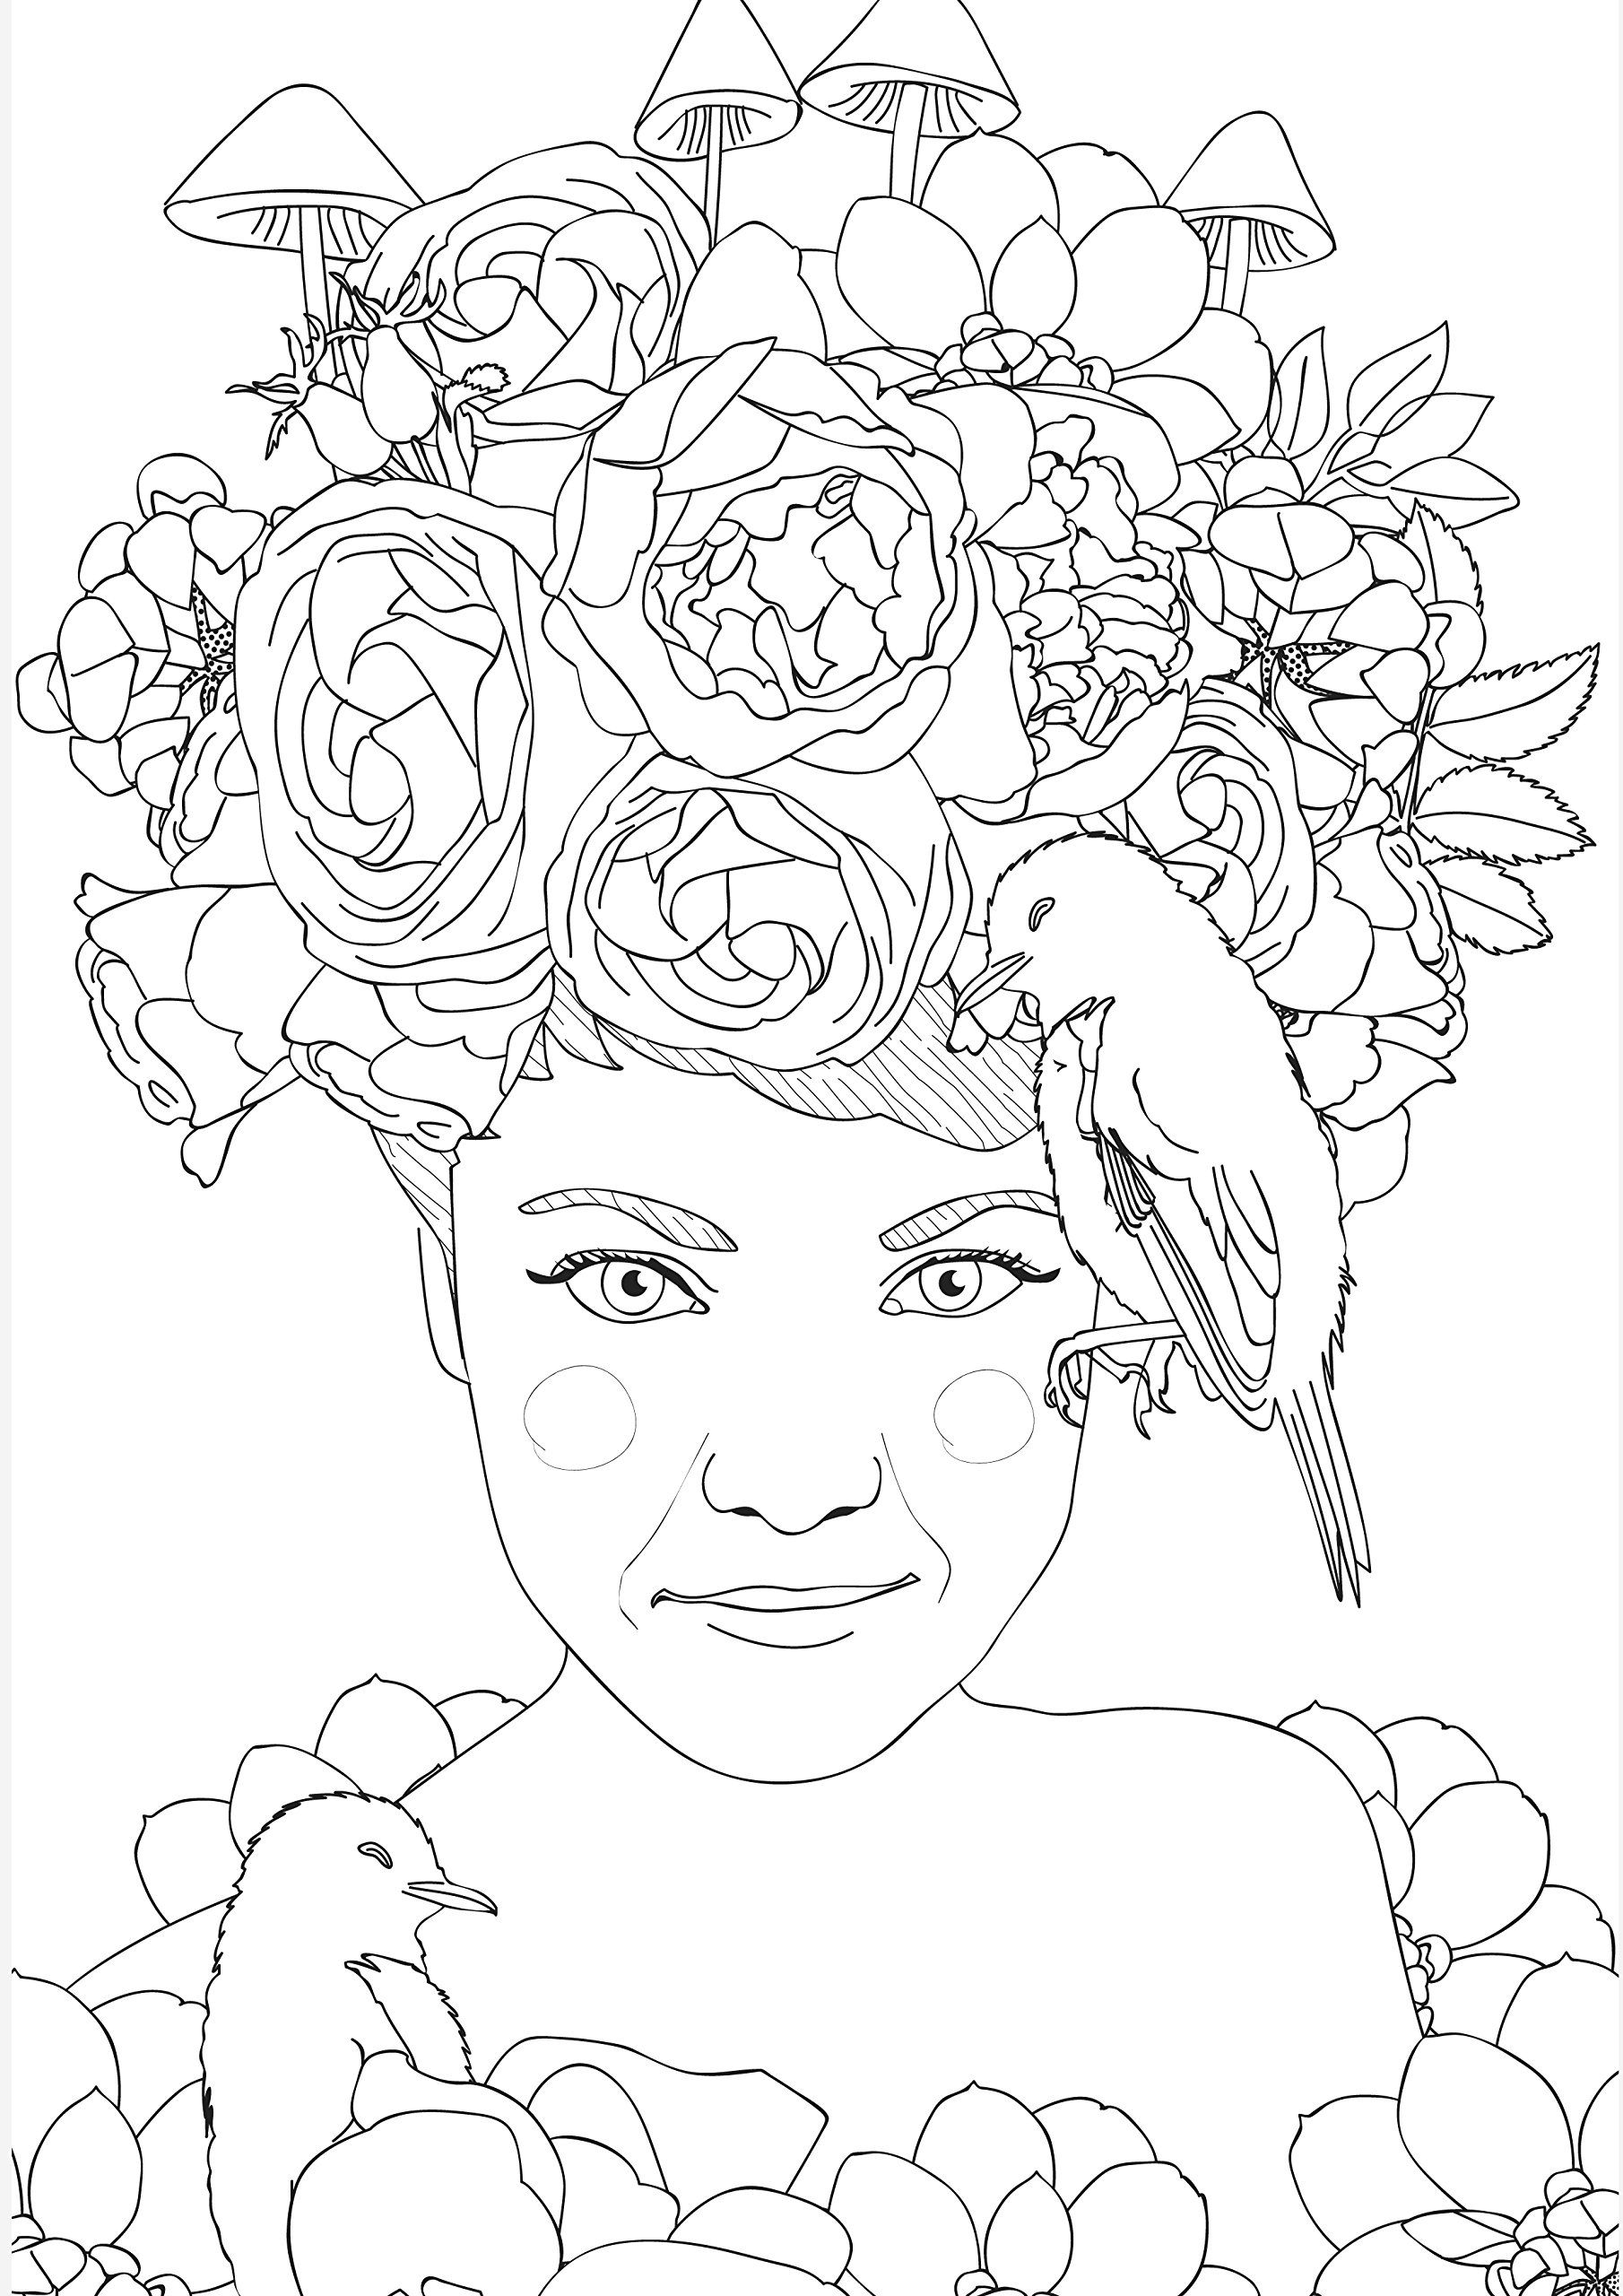 anti coloring book printable pages - photo#48